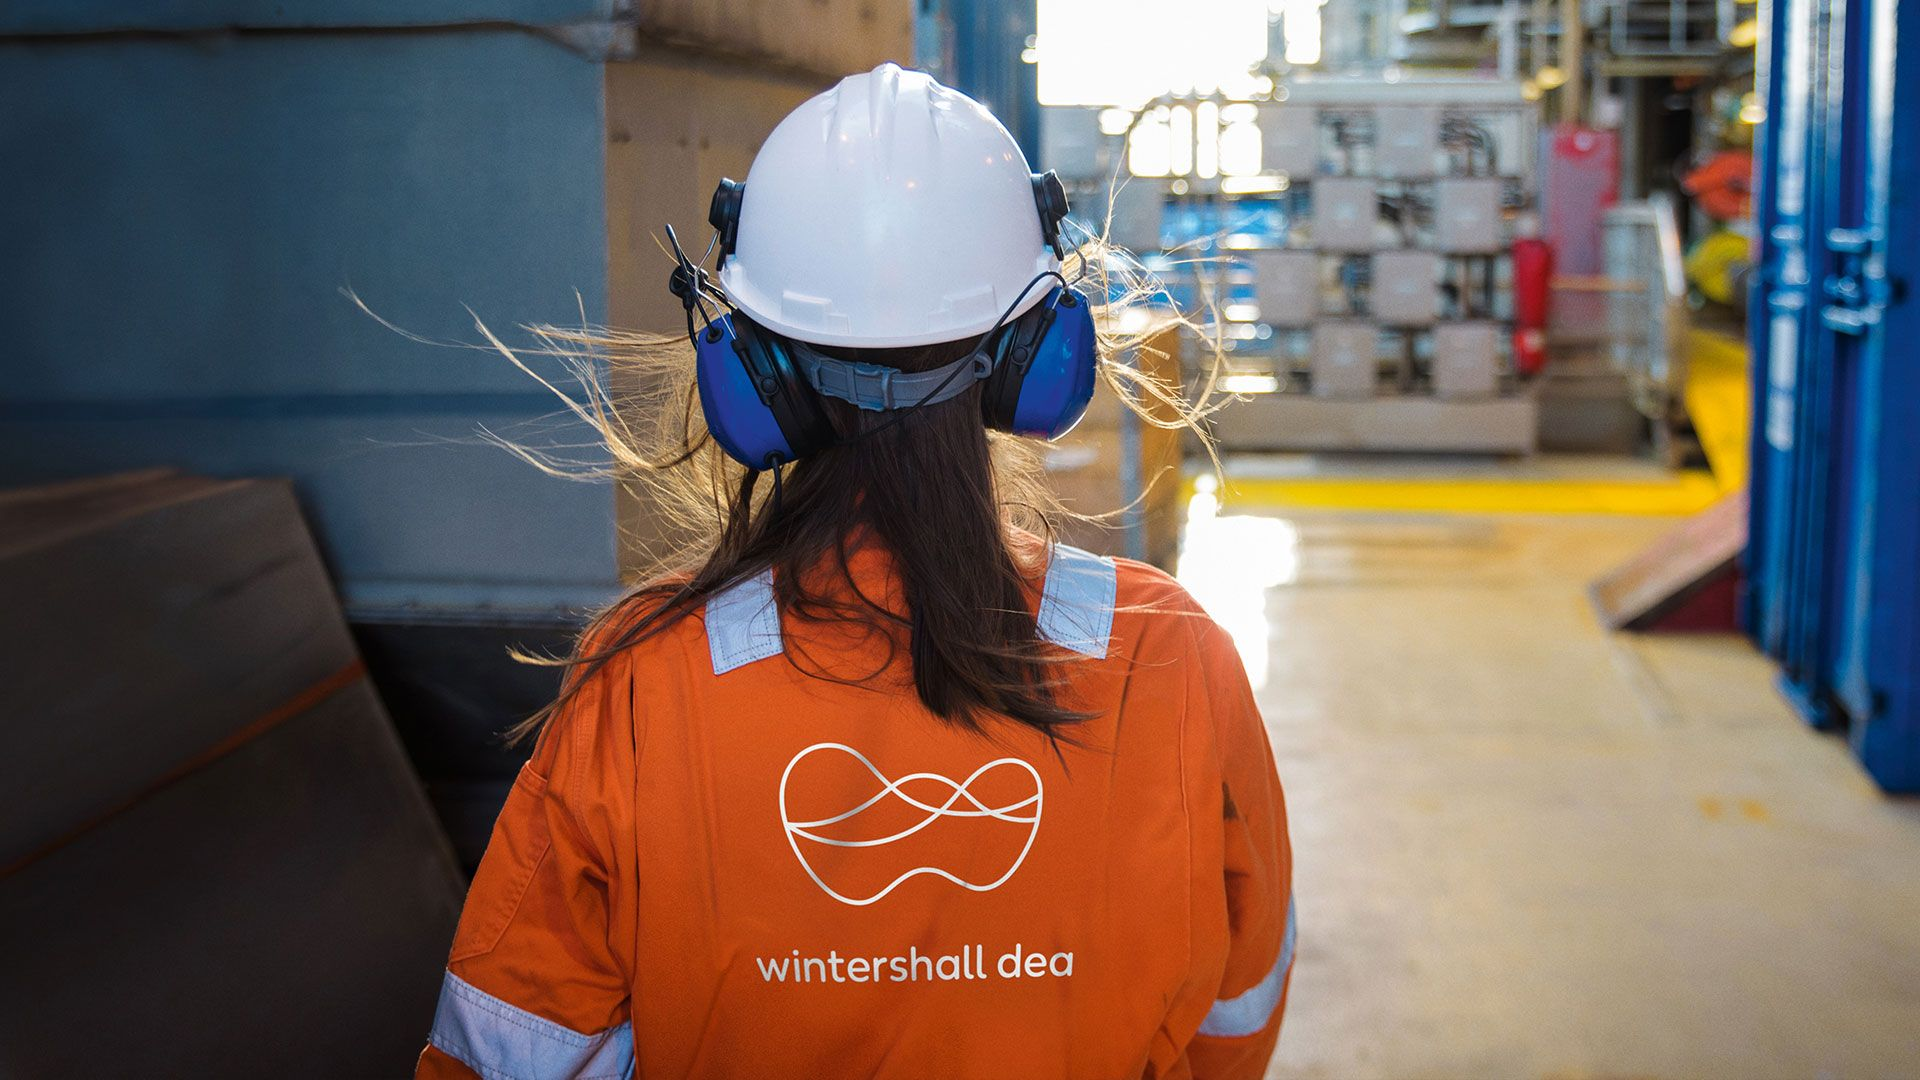 Wintershall Dea Merger